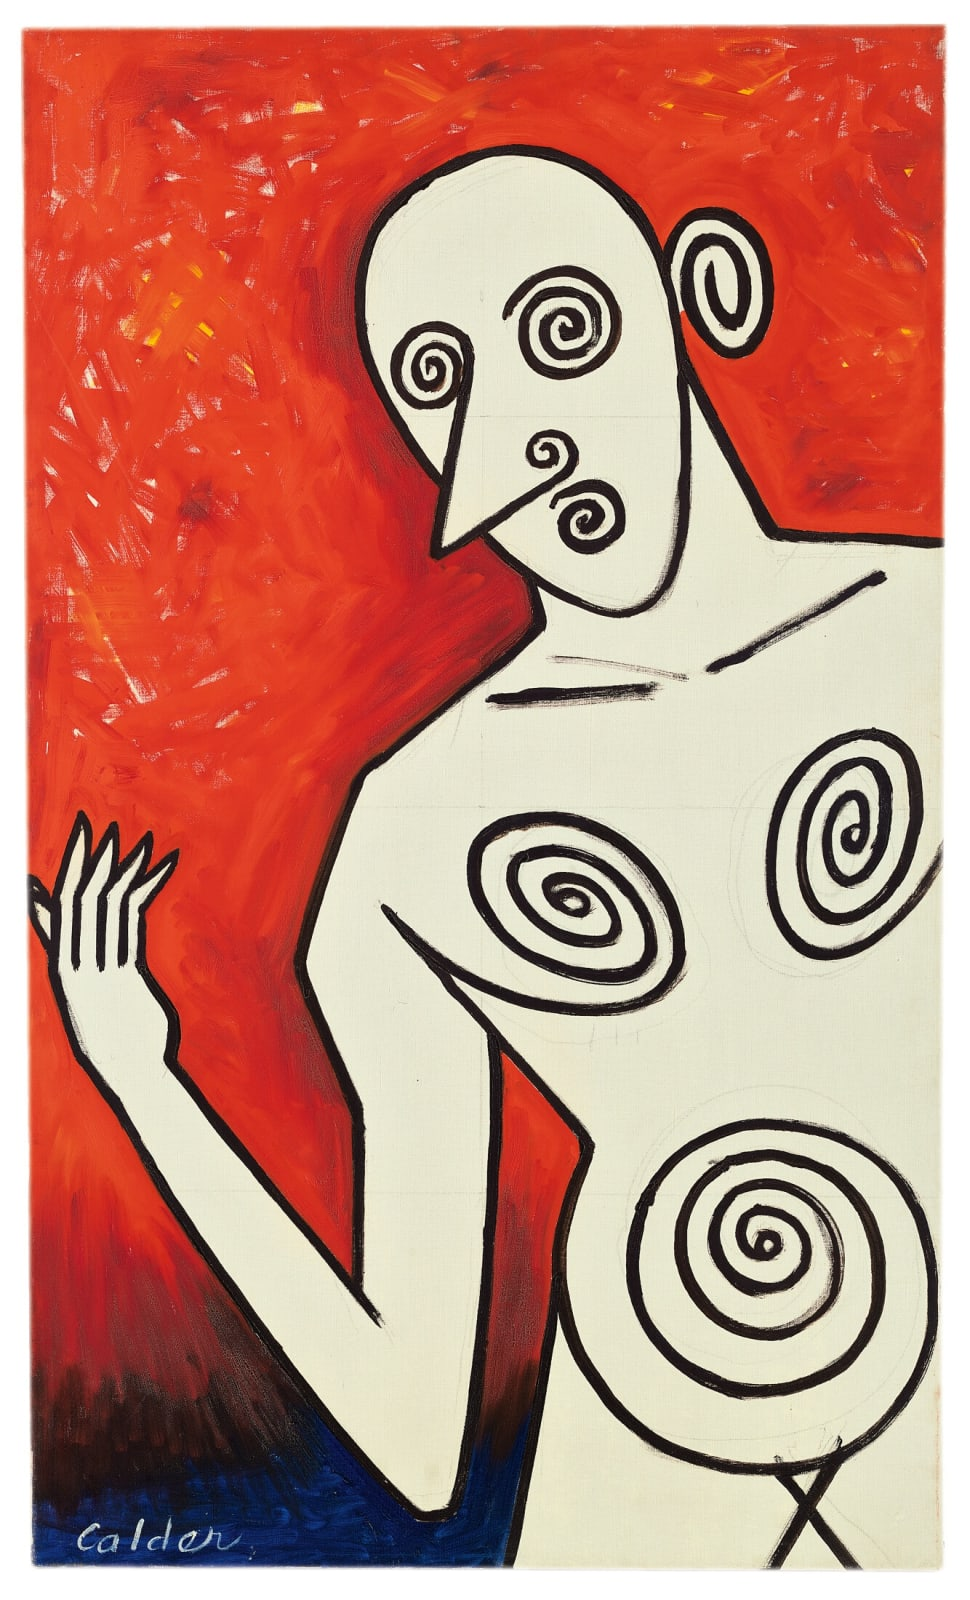 Alexander Calder Lady Composed of Spirals 1950 oil on canvas 42 x 25 1/4 inches 106.7 x 64.1 cm © Calder Foundation